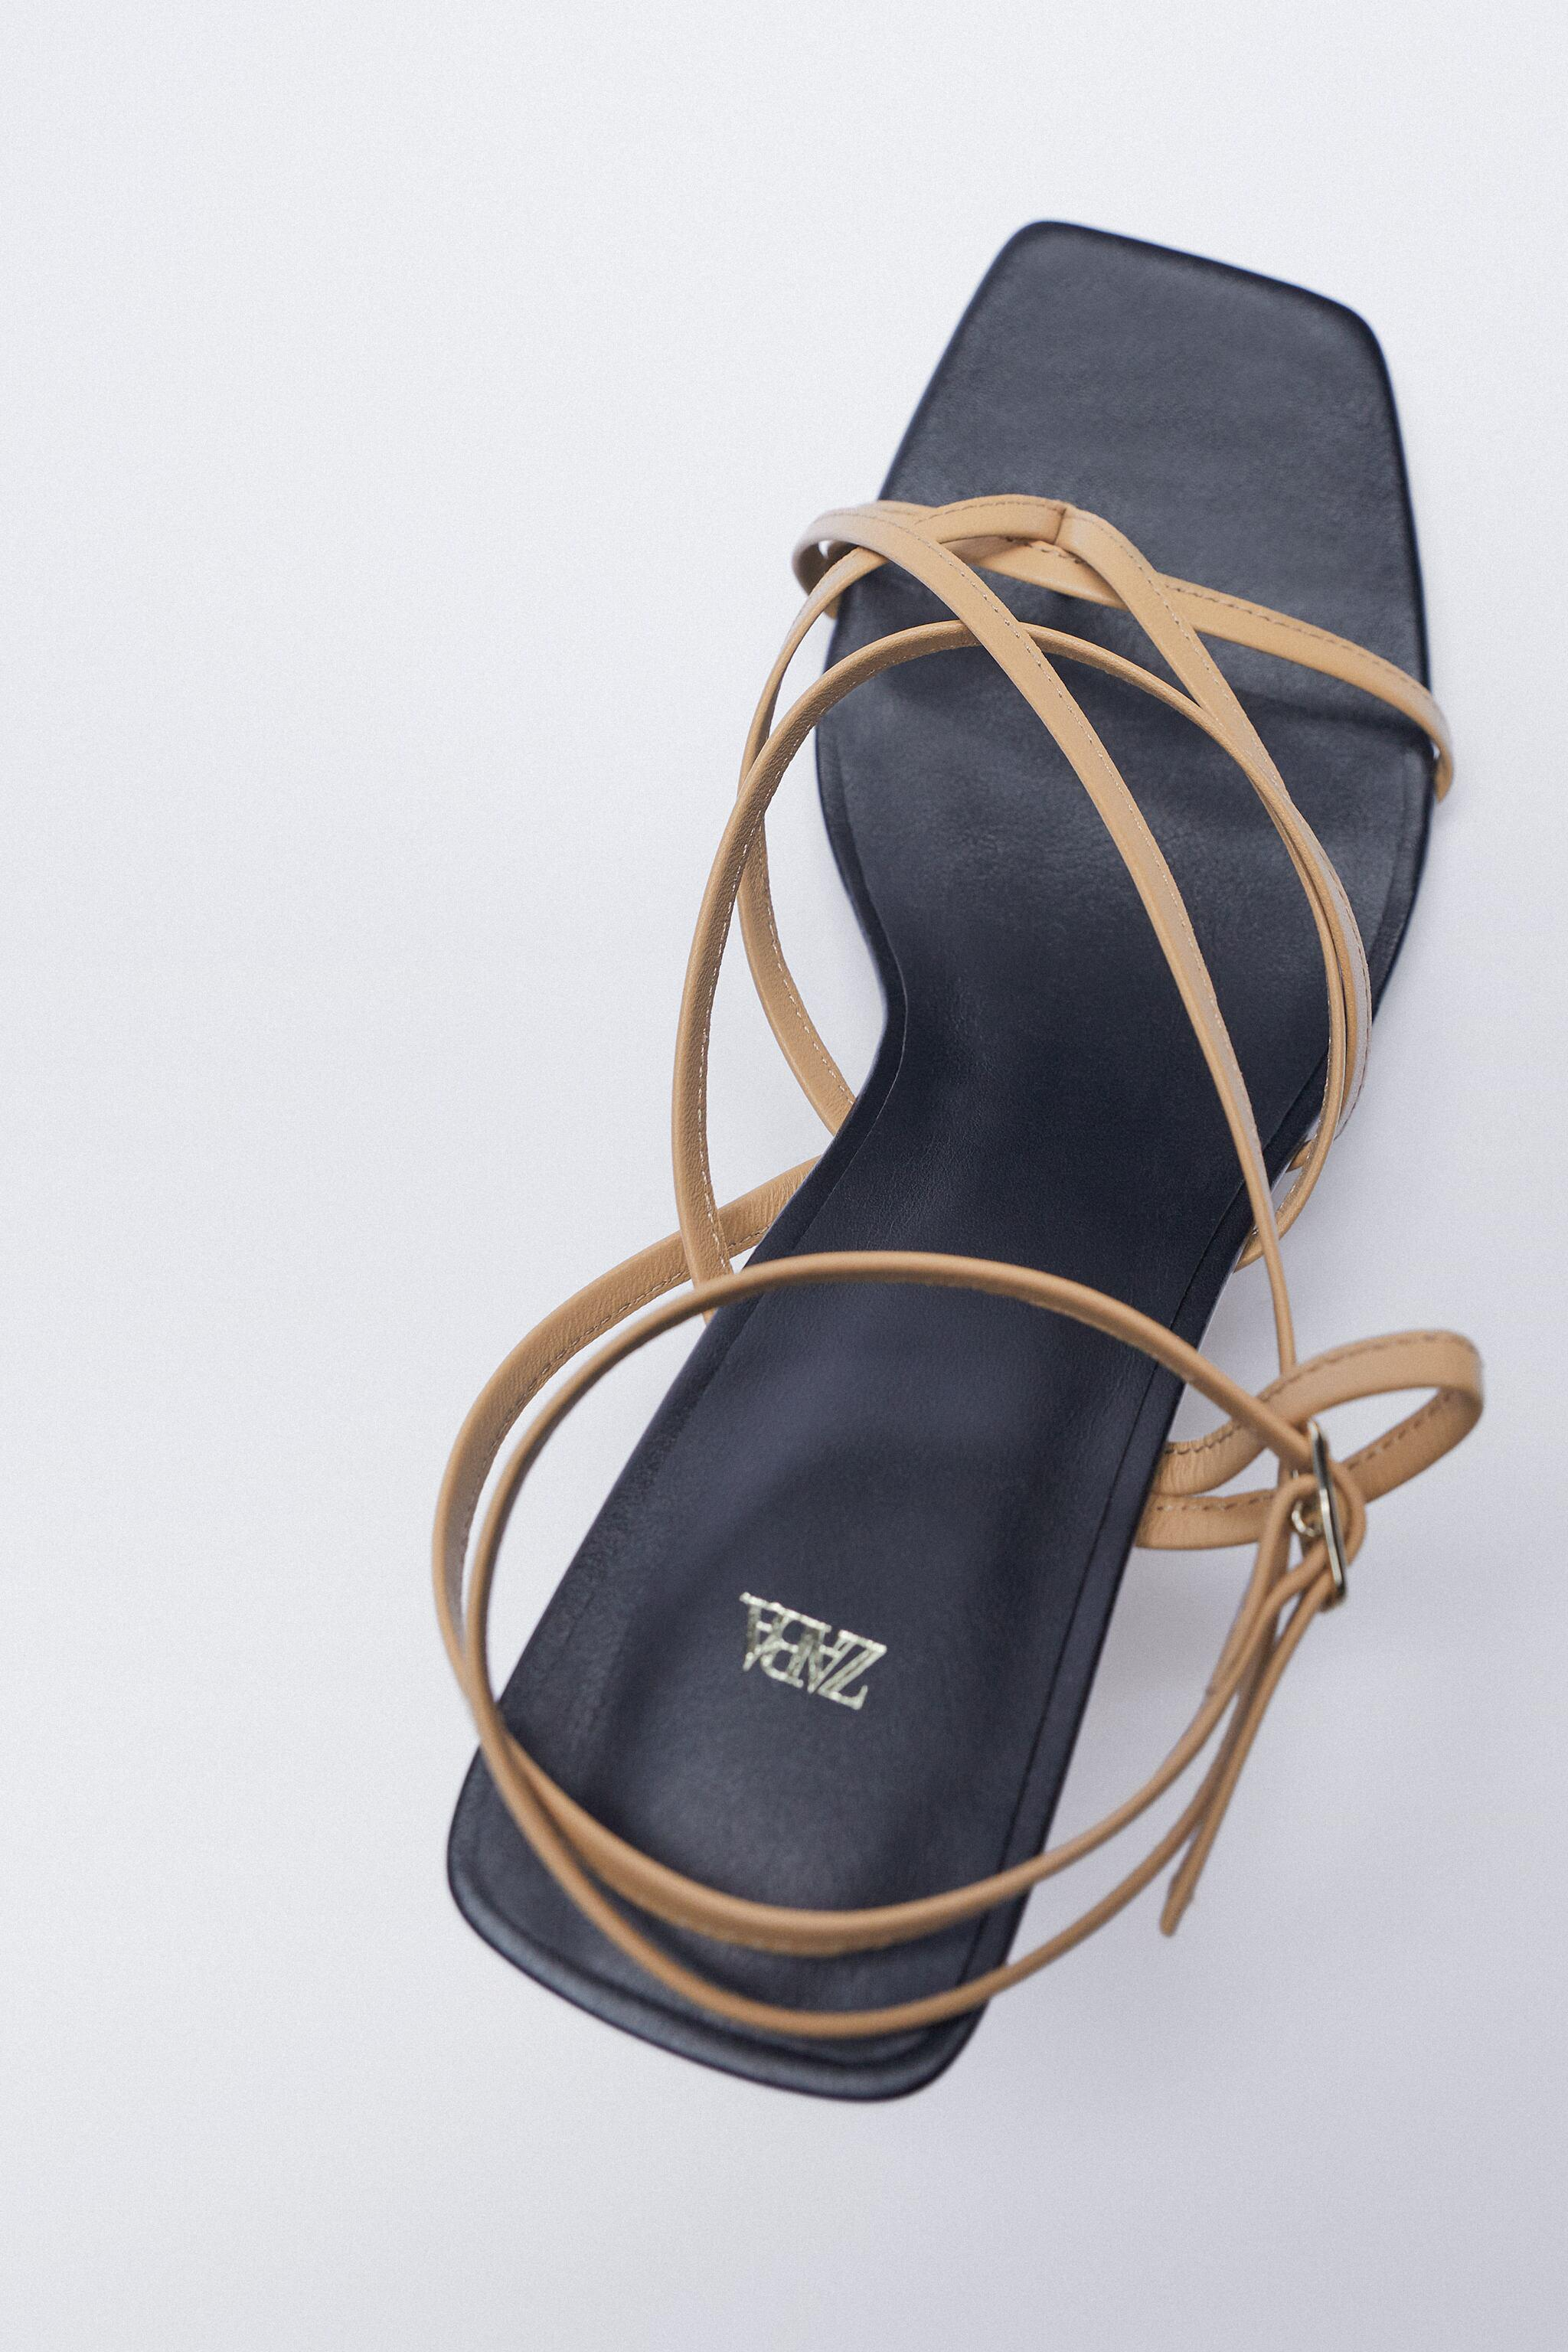 LEATHER HIGH HEELED STRAPPY SANDALS 6